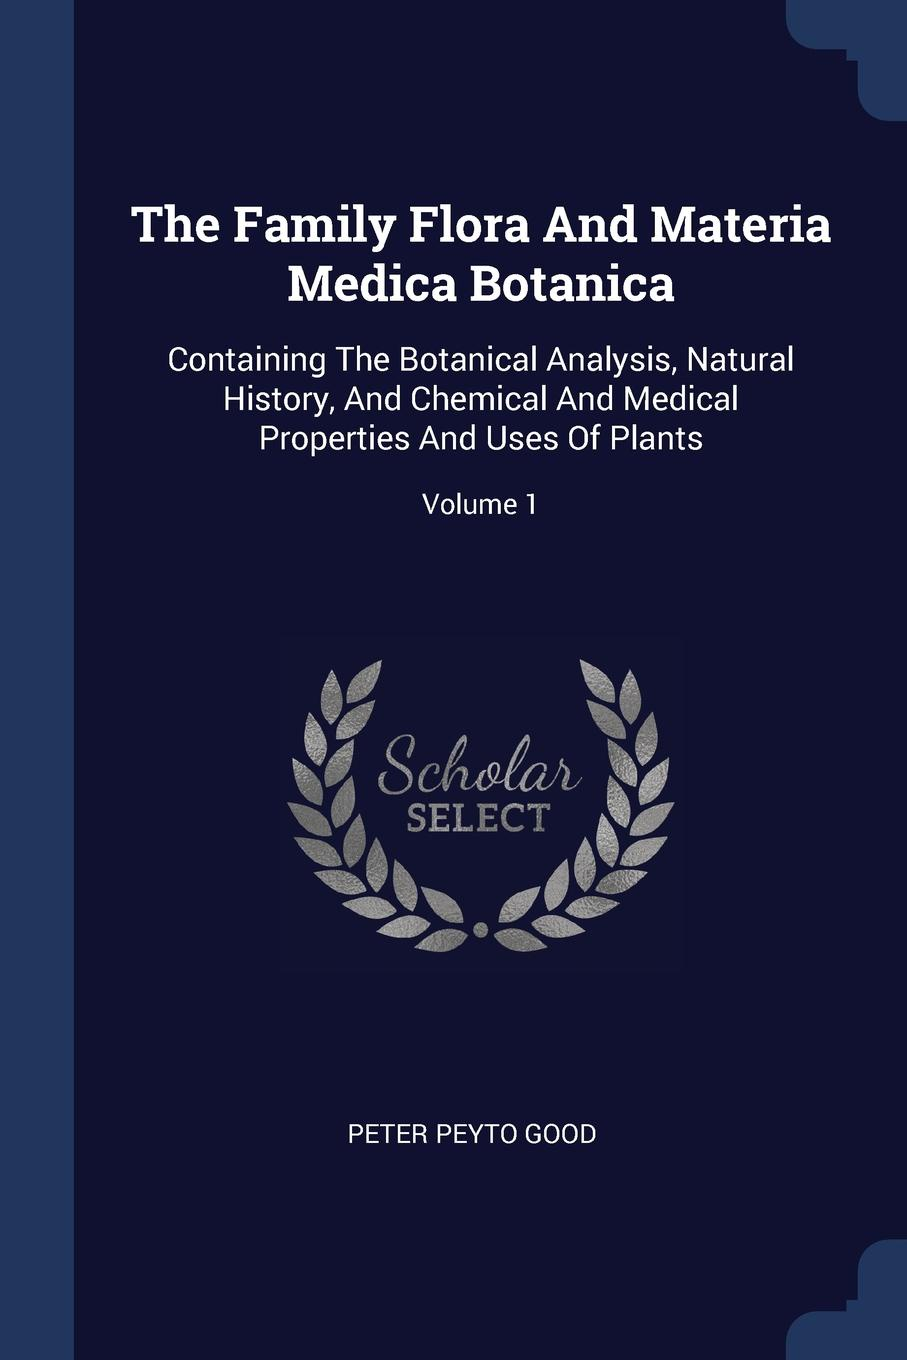 Peter Peyto Good The Family Flora And Materia Medica Botanica. Containing The Botanical Analysis, Natural History, And Chemical And Medical Properties And Uses Of Plants; Volume 1 peter p good the family flora and materia medica botanica volume 2